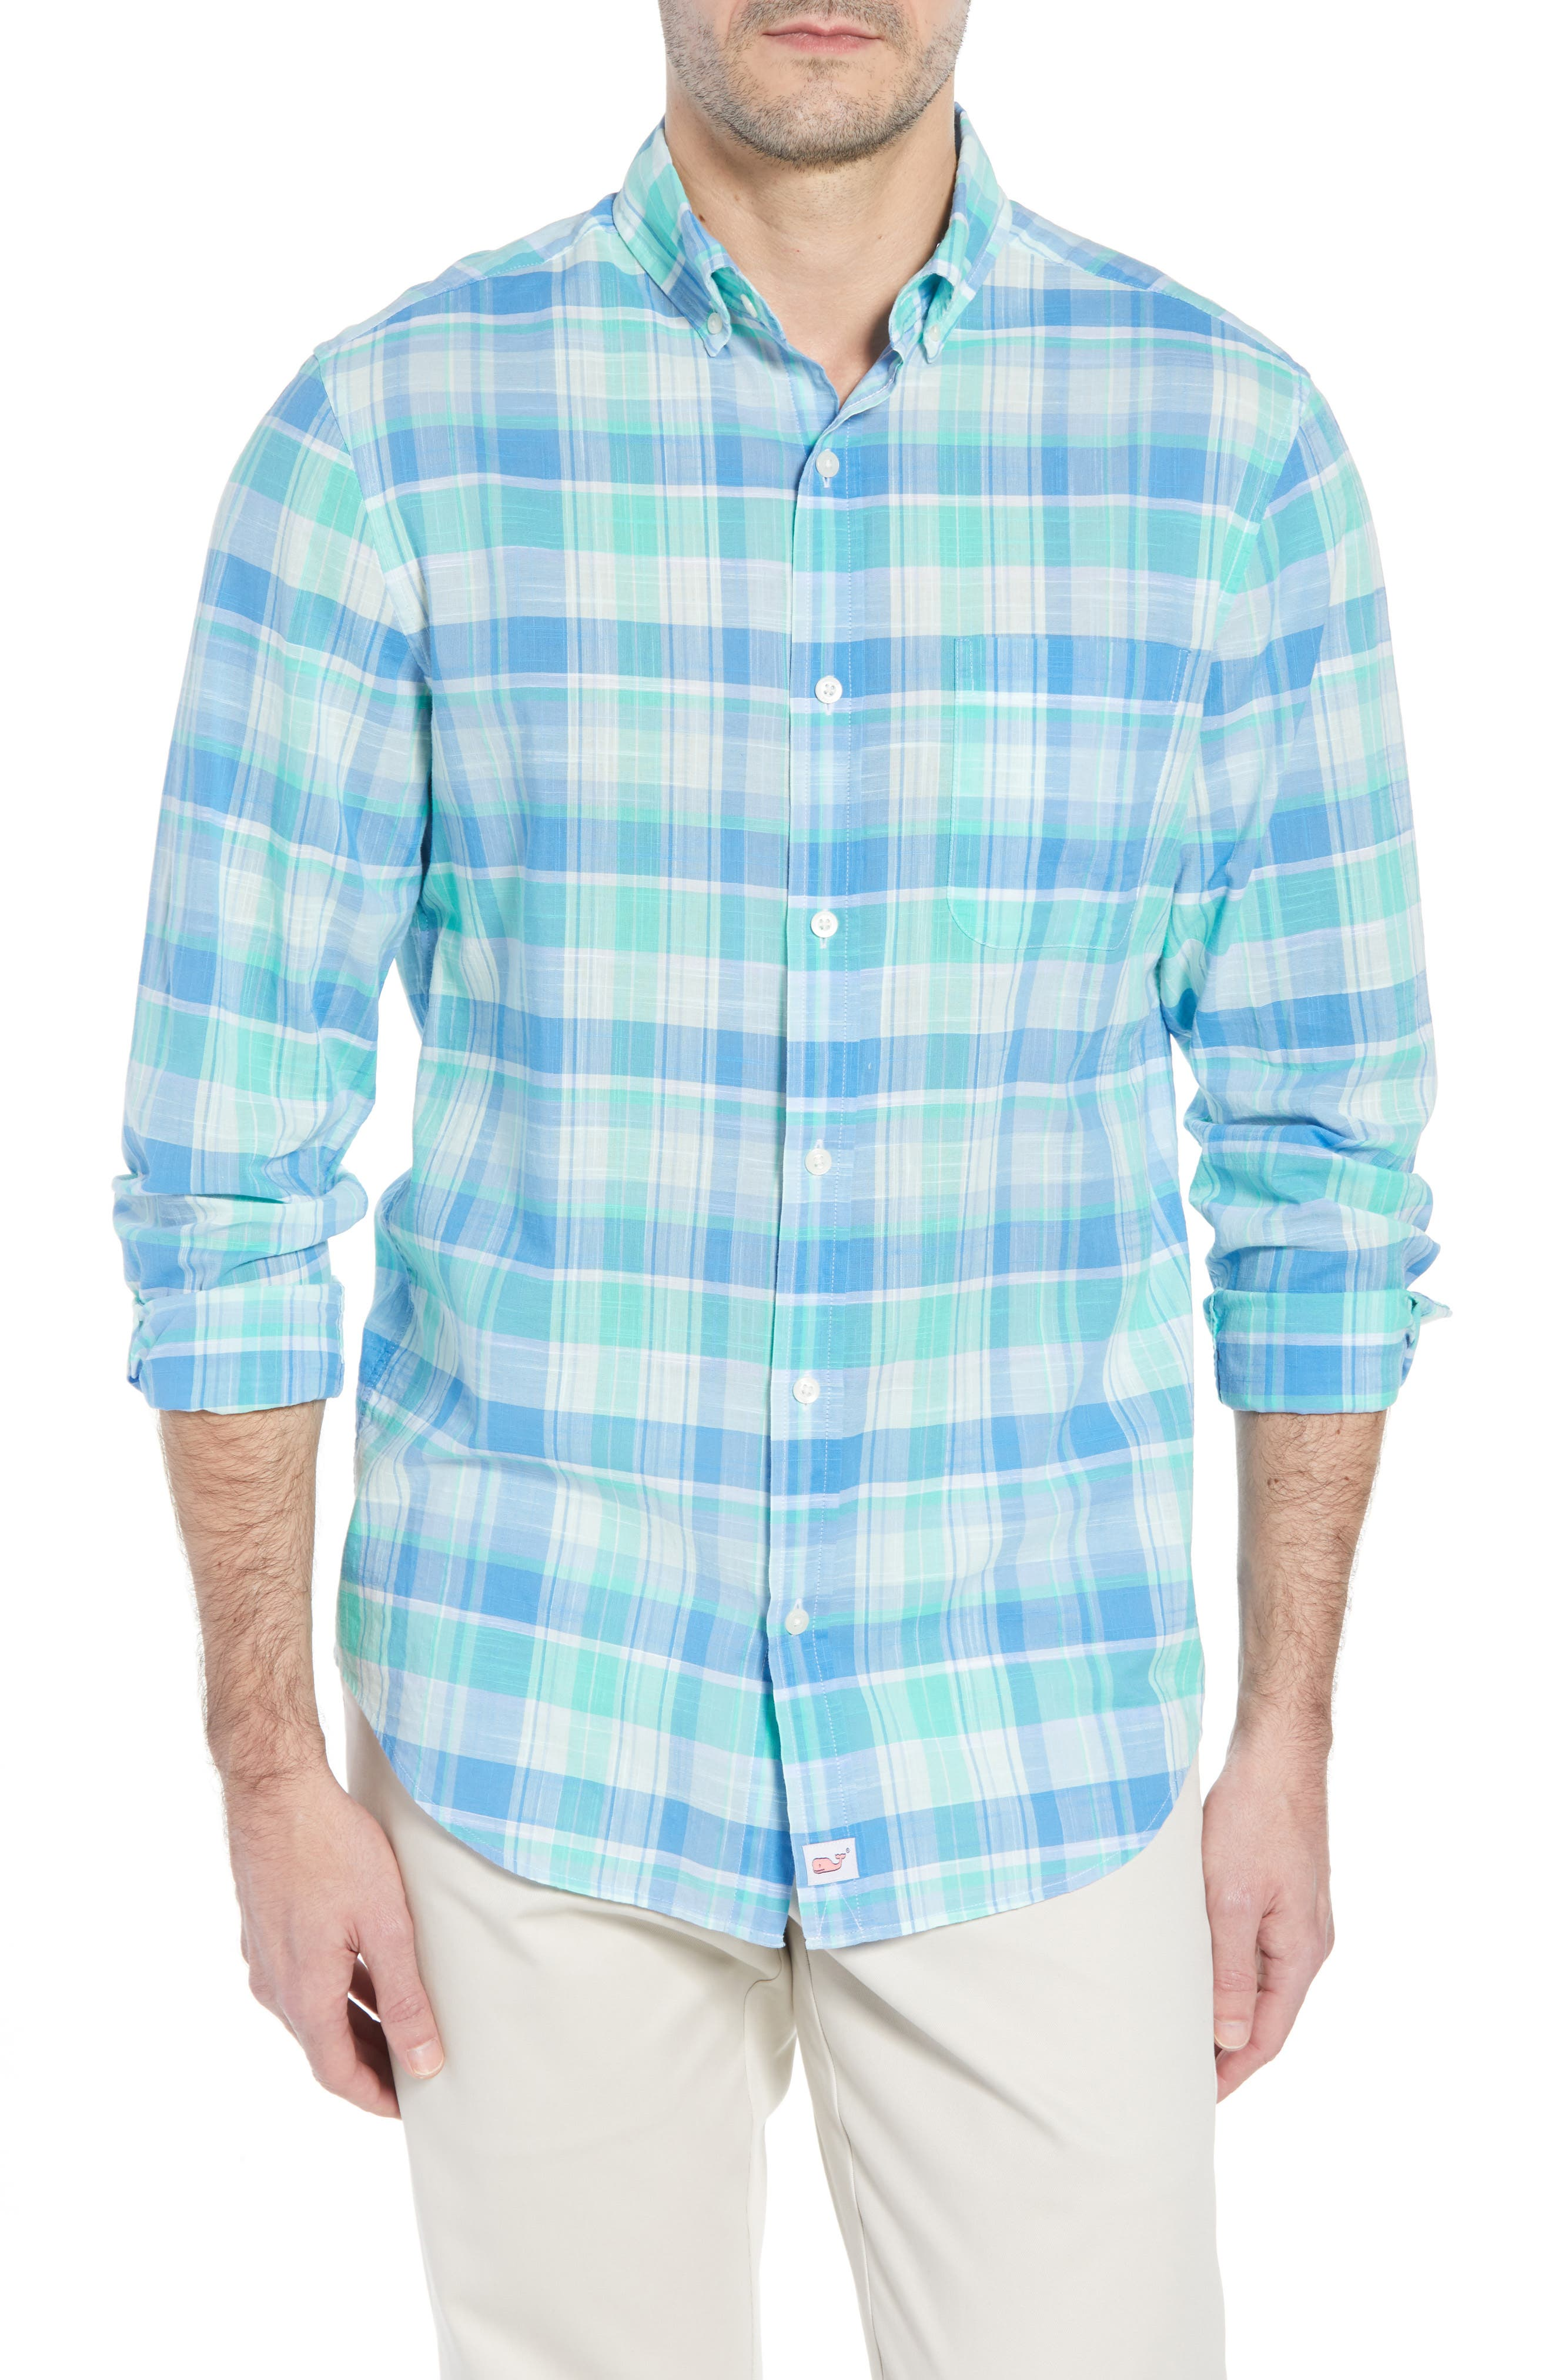 Homer Pond Murray Classic Fit Plaid Sport Shirt,                             Main thumbnail 1, color,                             359